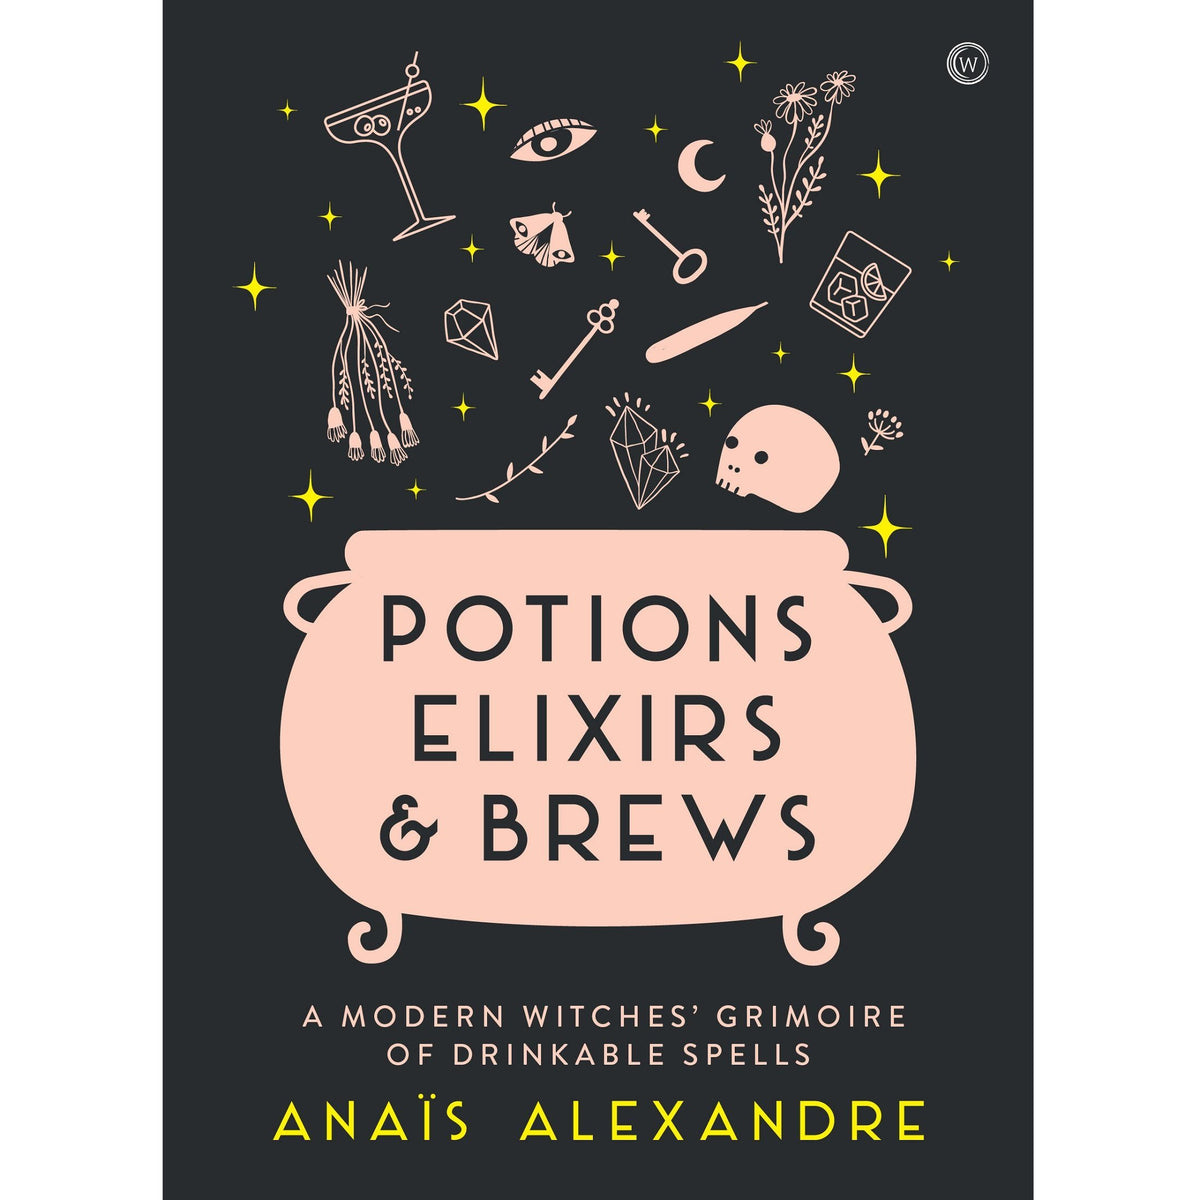 Potions, Elixirs & Brews Book - A Modern Witches' Grimoire of Drinkable Spells